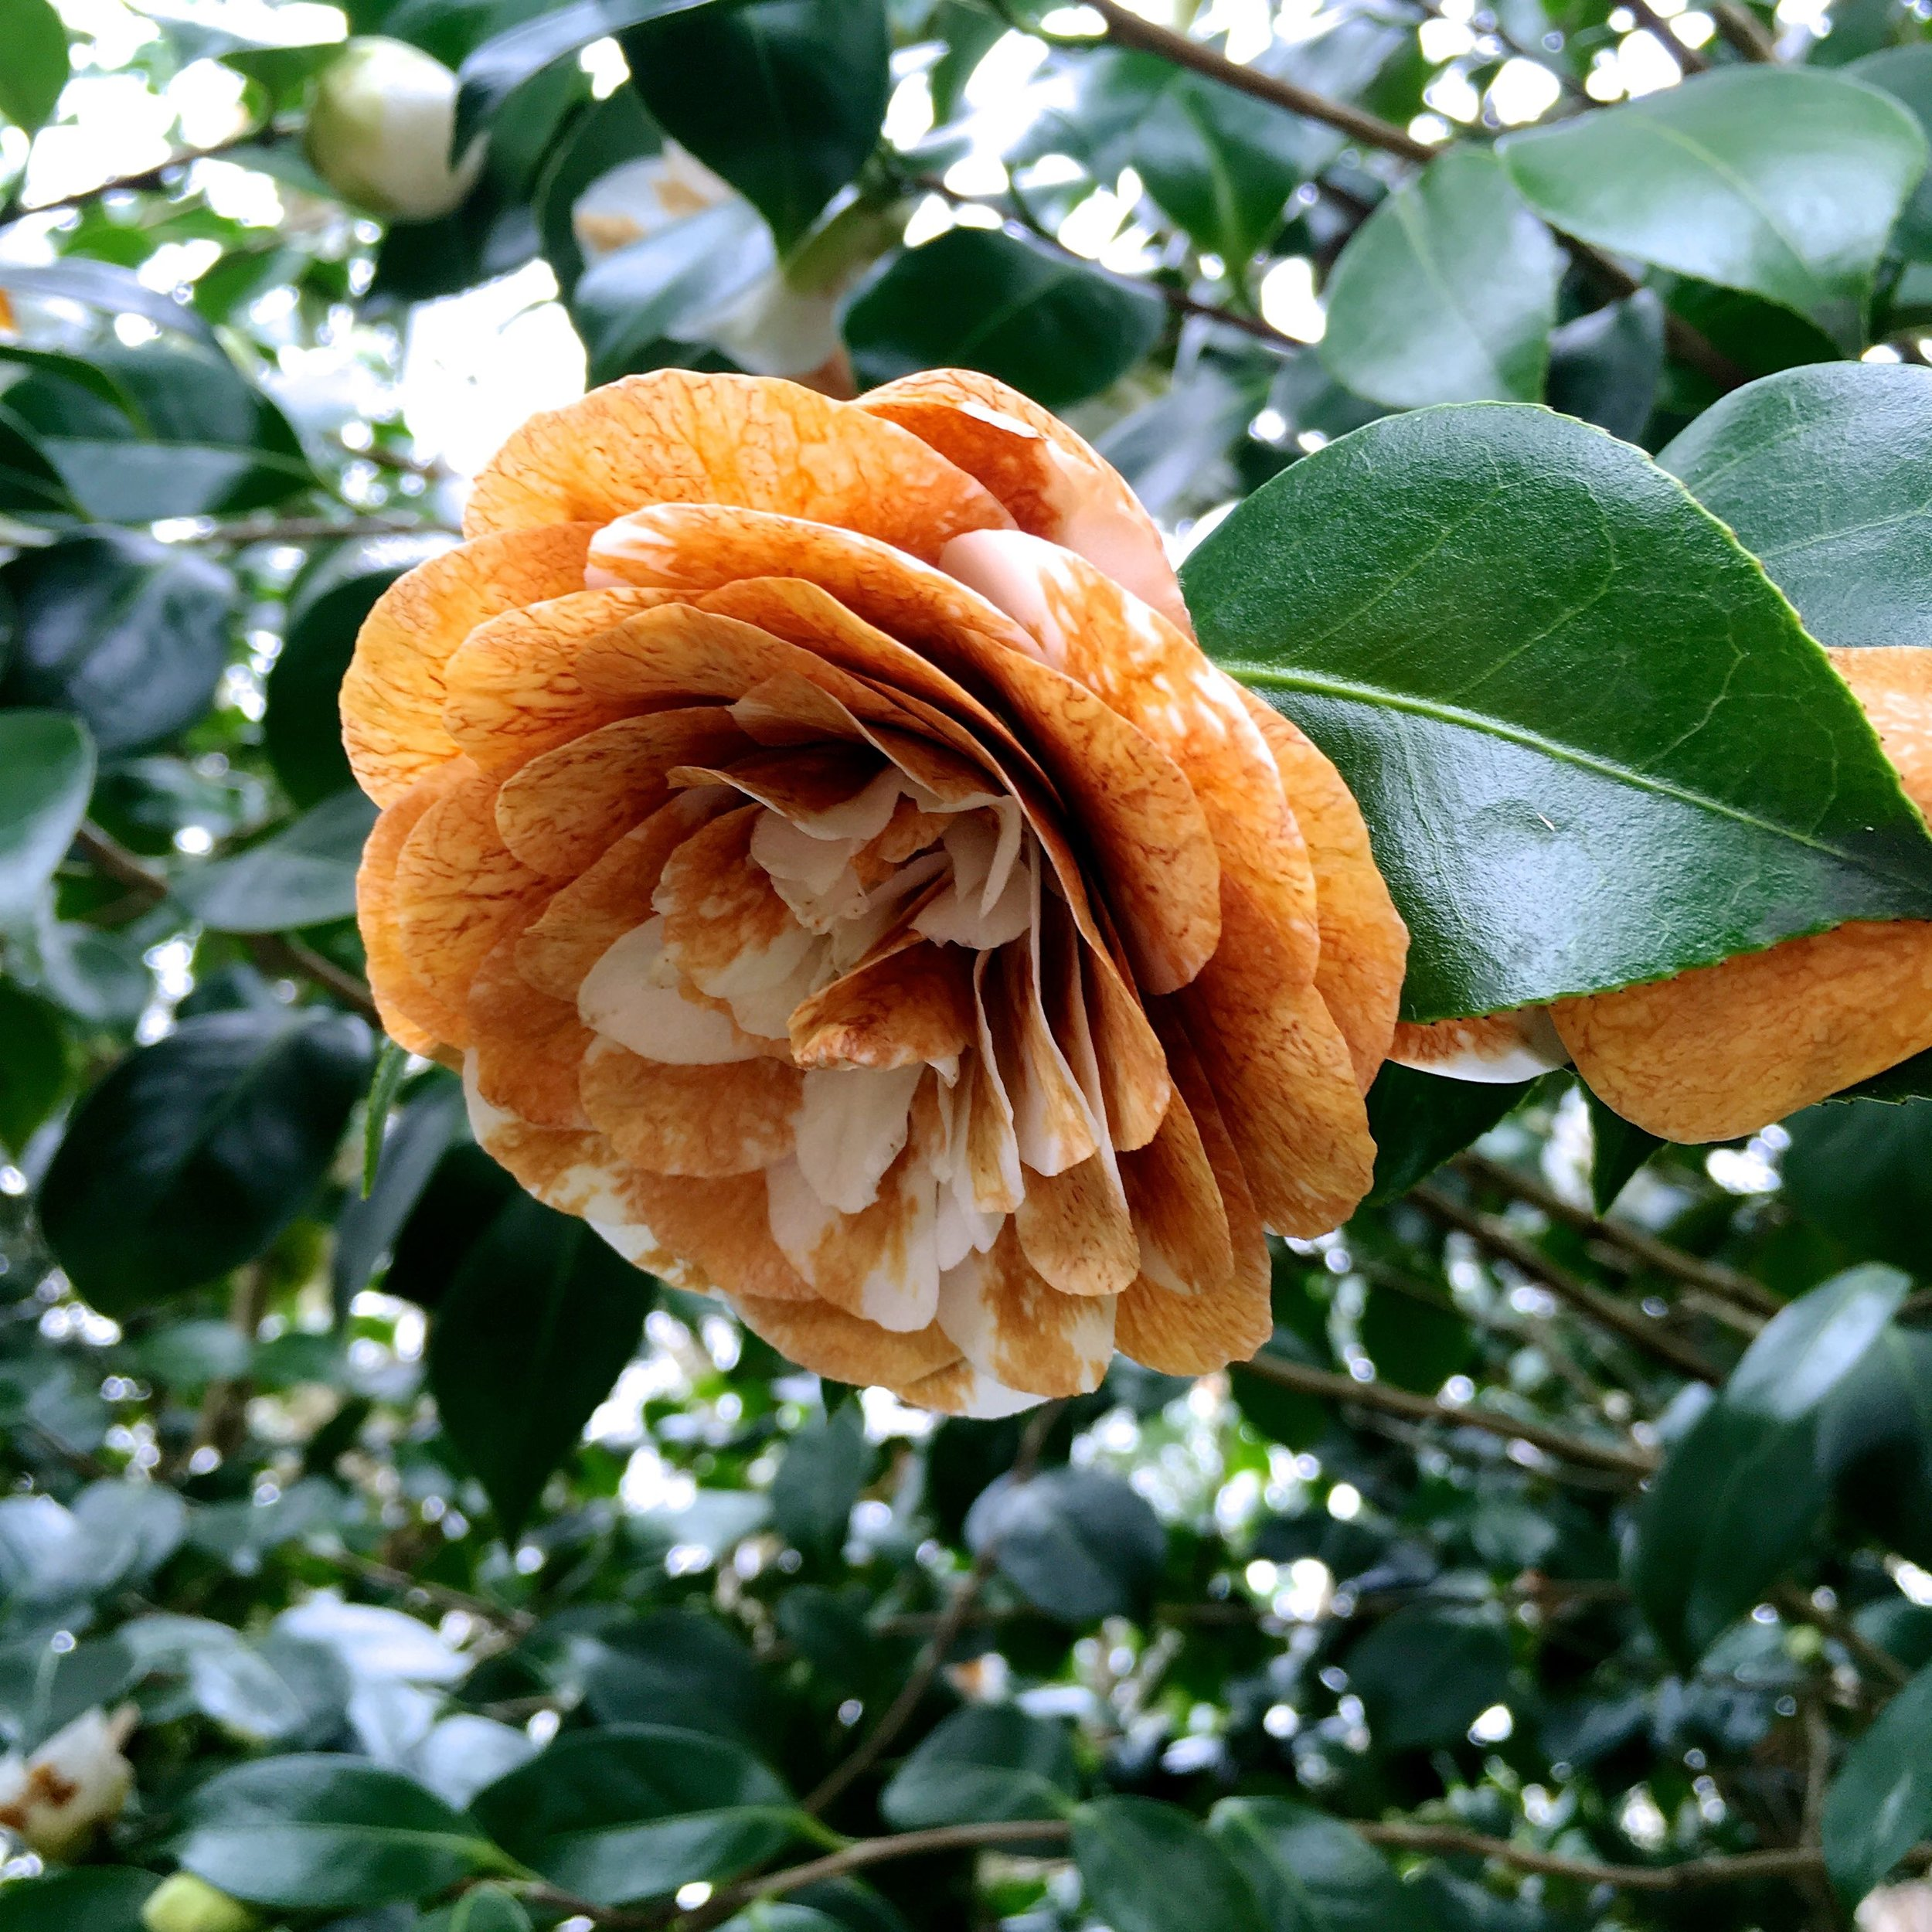 fading beauty of the camellias at Kingtson Lacy in Dorset